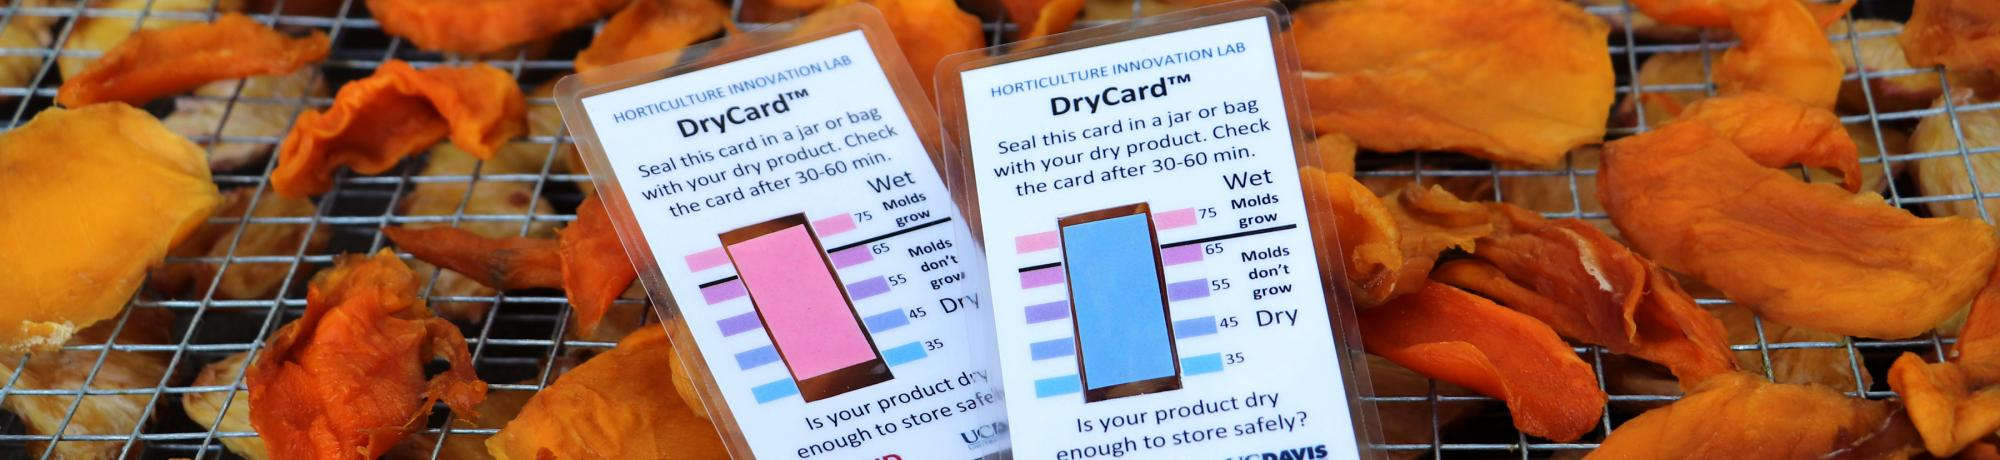 DryCard indicates dryness for safe food storage